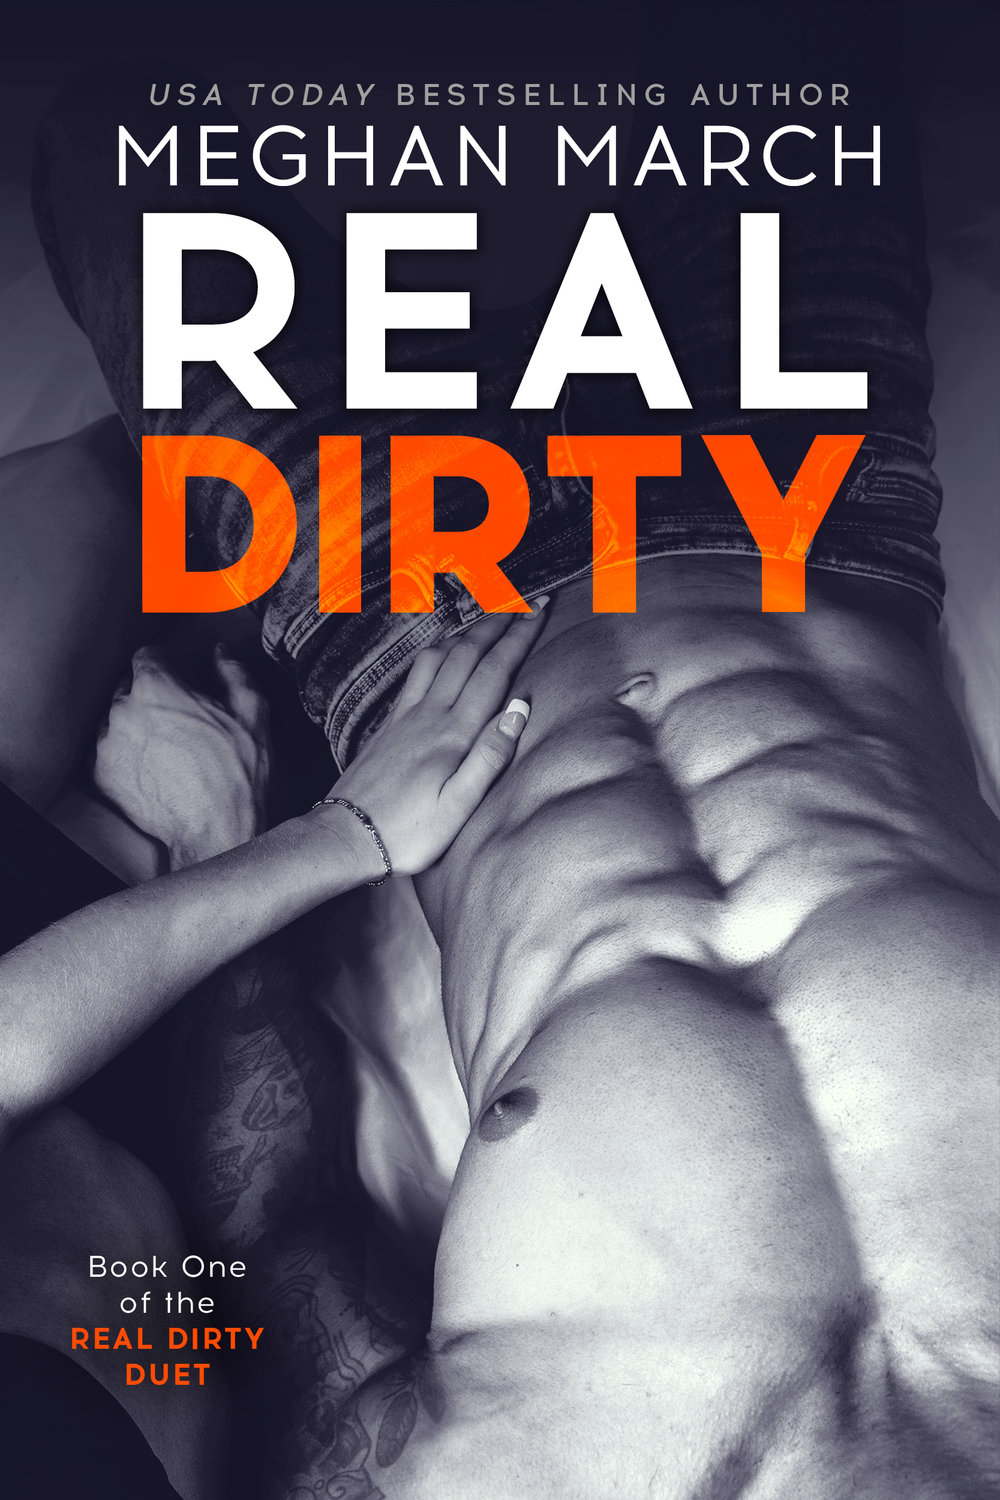 REAL SEXY ~ Release Day May 23th  Real Dirty Duet Book 2 ~ By Meghan March  In Nashville, country stars are a dime a dozen.  I swore I'd never get caught up with one, but Boone Thrasher made a liar out of me.  I said I'd never put my heart on the line, but he didn't ask before he stole it.  Now we're facing my worst fears, and we'll see if this country boy is tough enough to see it through.  Girls like me don't get happily ever afters… but maybe he'll prove that wrong too.    Amazon  ~  iBooks  ~  B&N  ~  Kobo  ~  Google Play